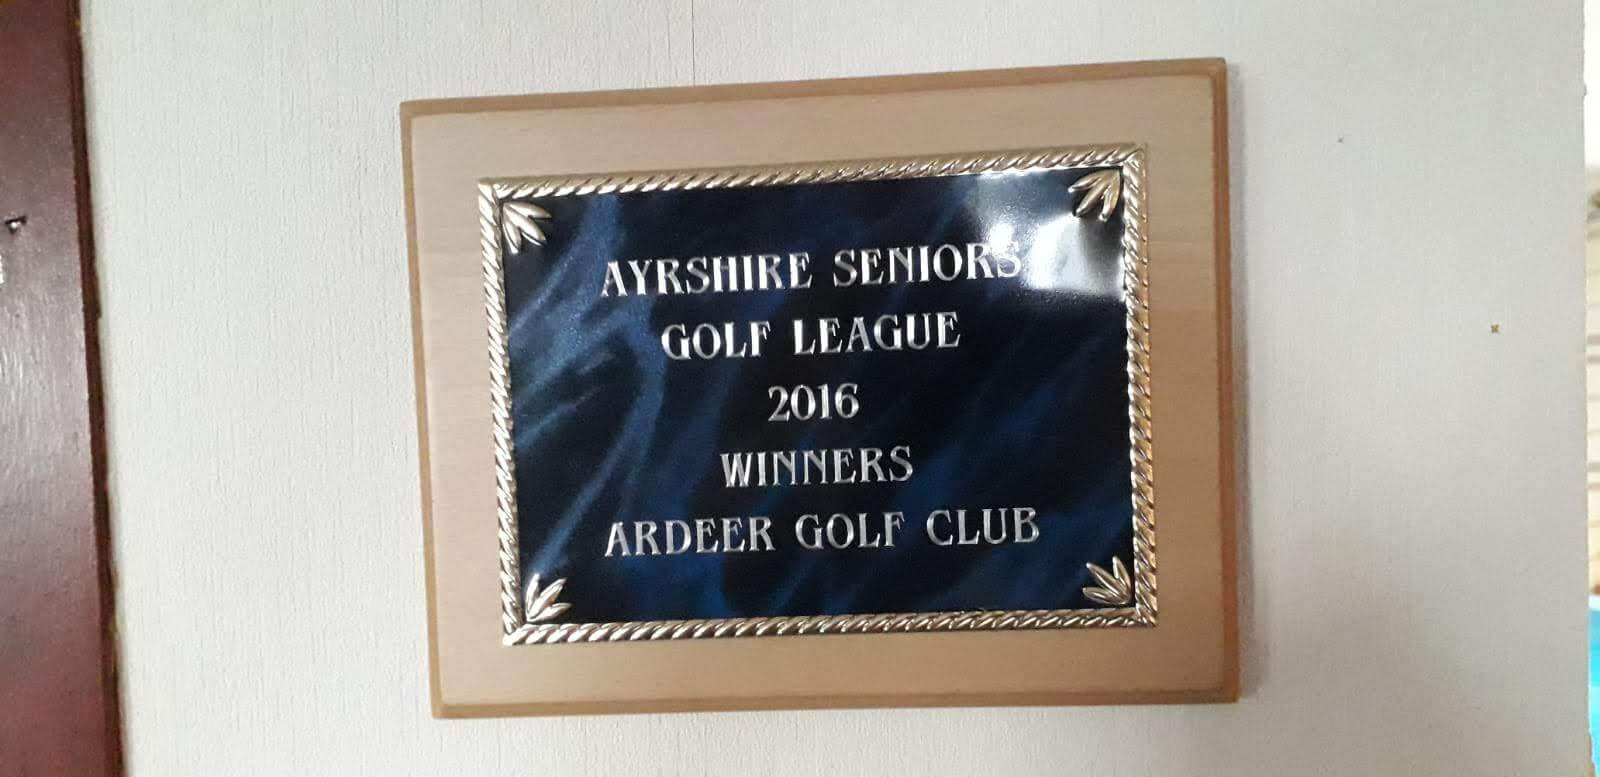 Ayrshire Seniors Golf League Winners Plaque 2016